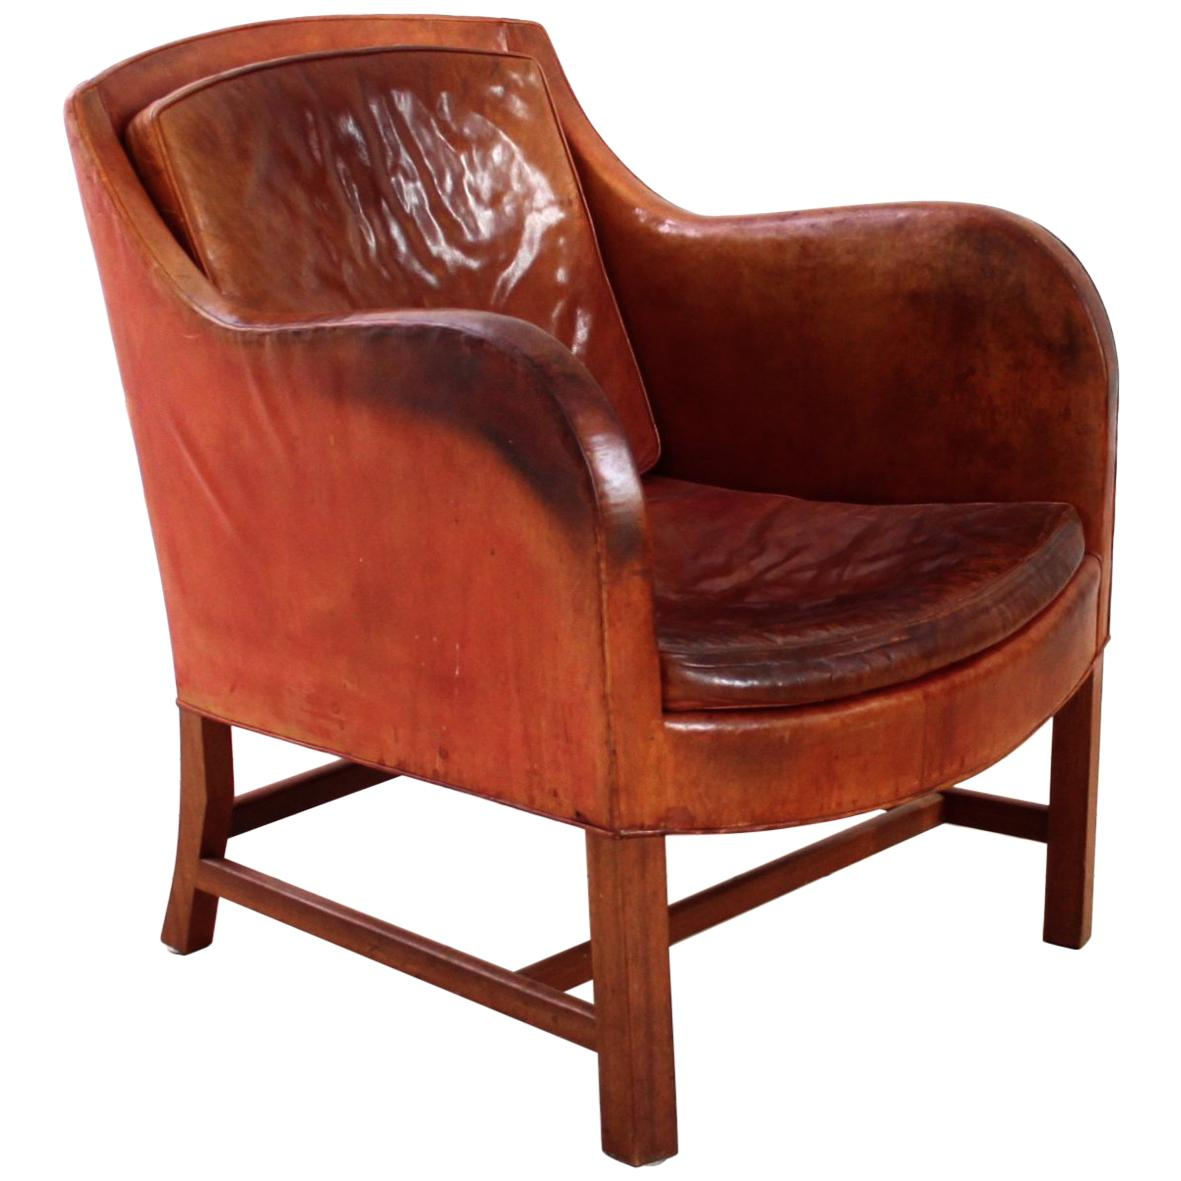 Kaare Klint Mix Chair in Original Niger Leather